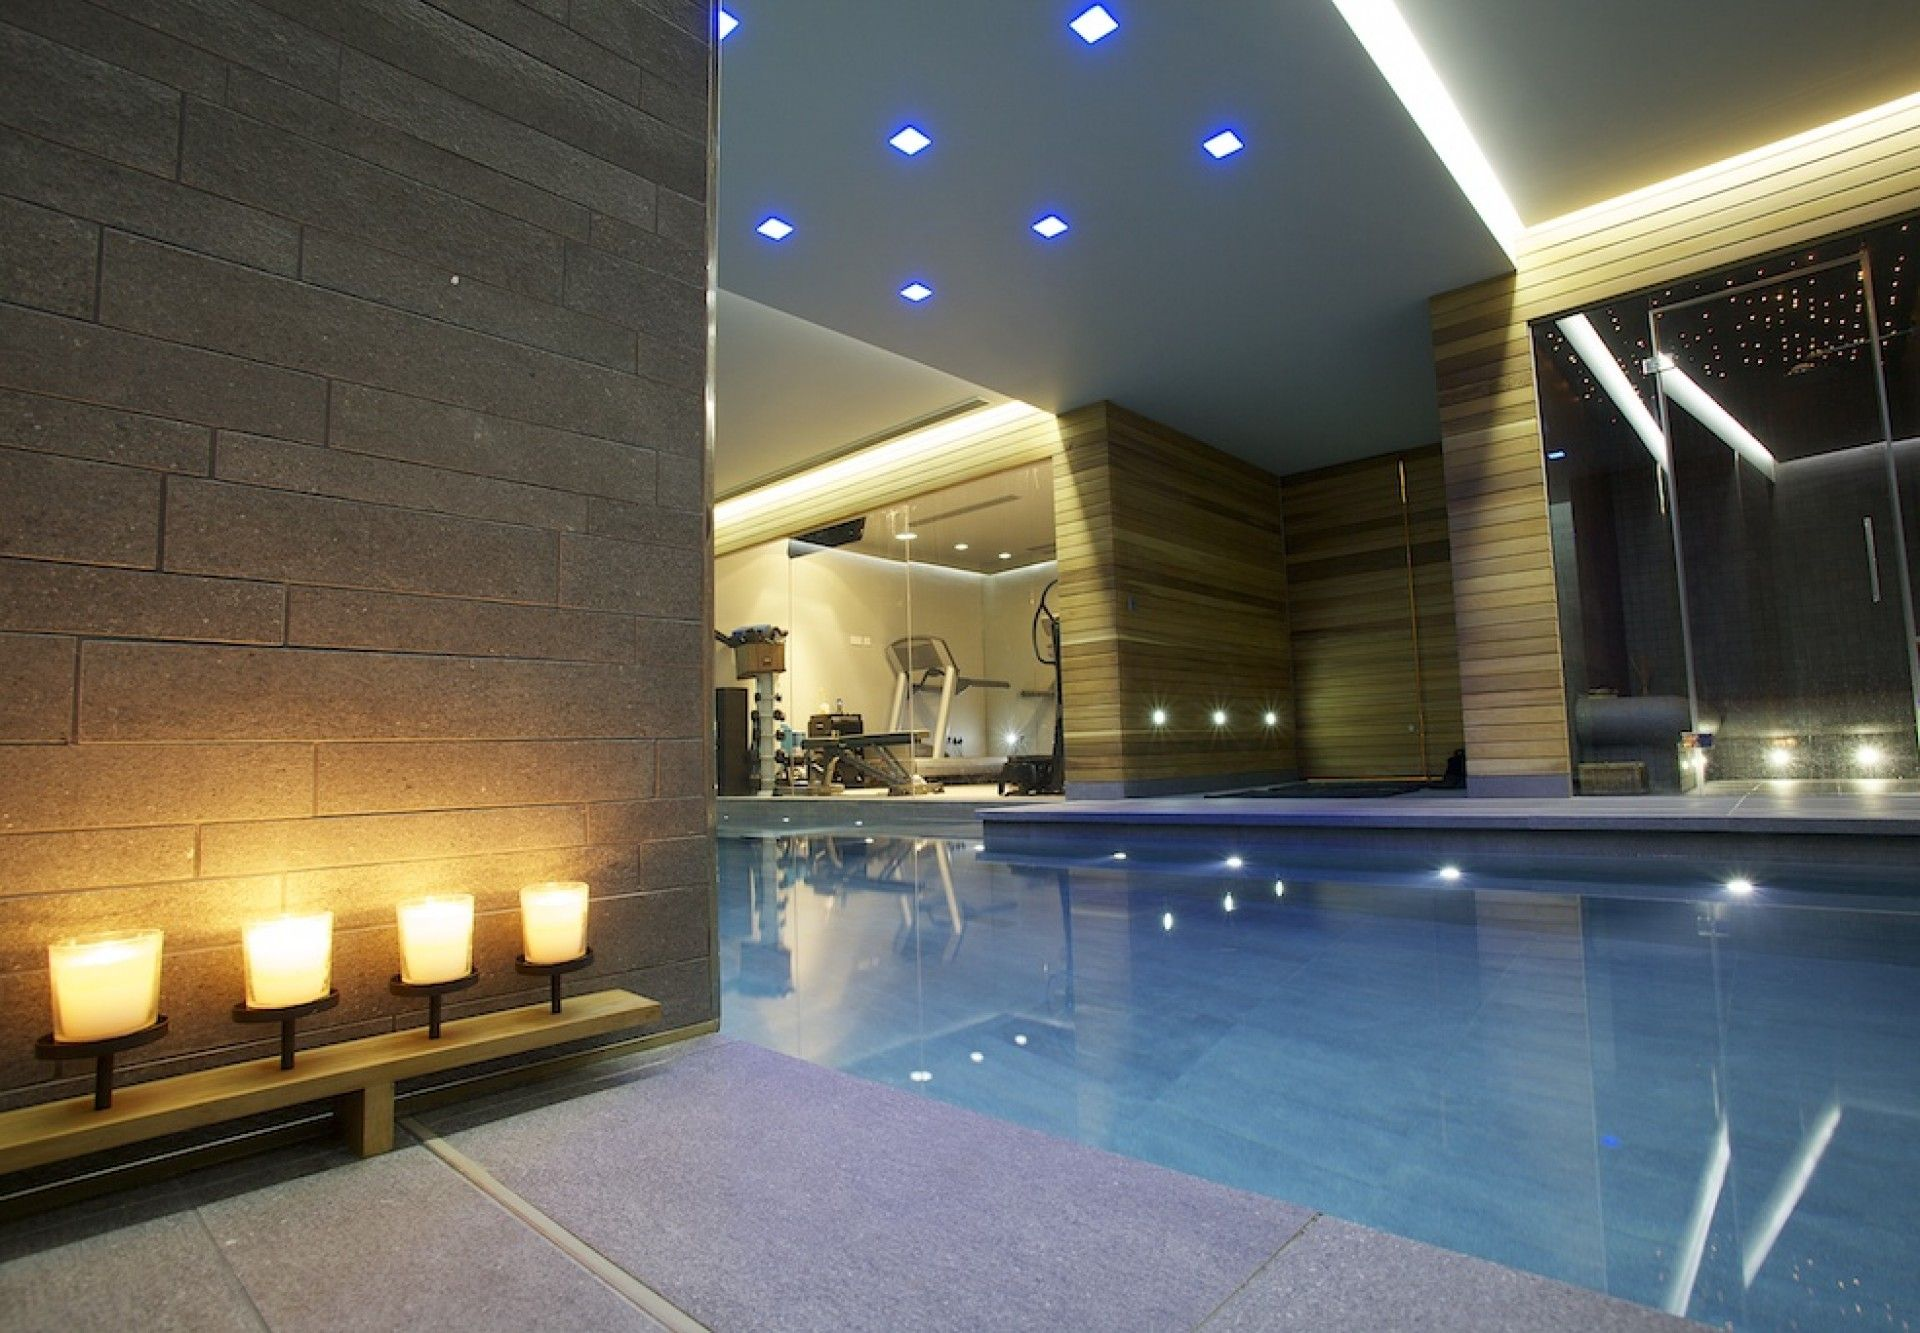 Basement indoor swimming pool in london home spa for Basement swimming pool ideas